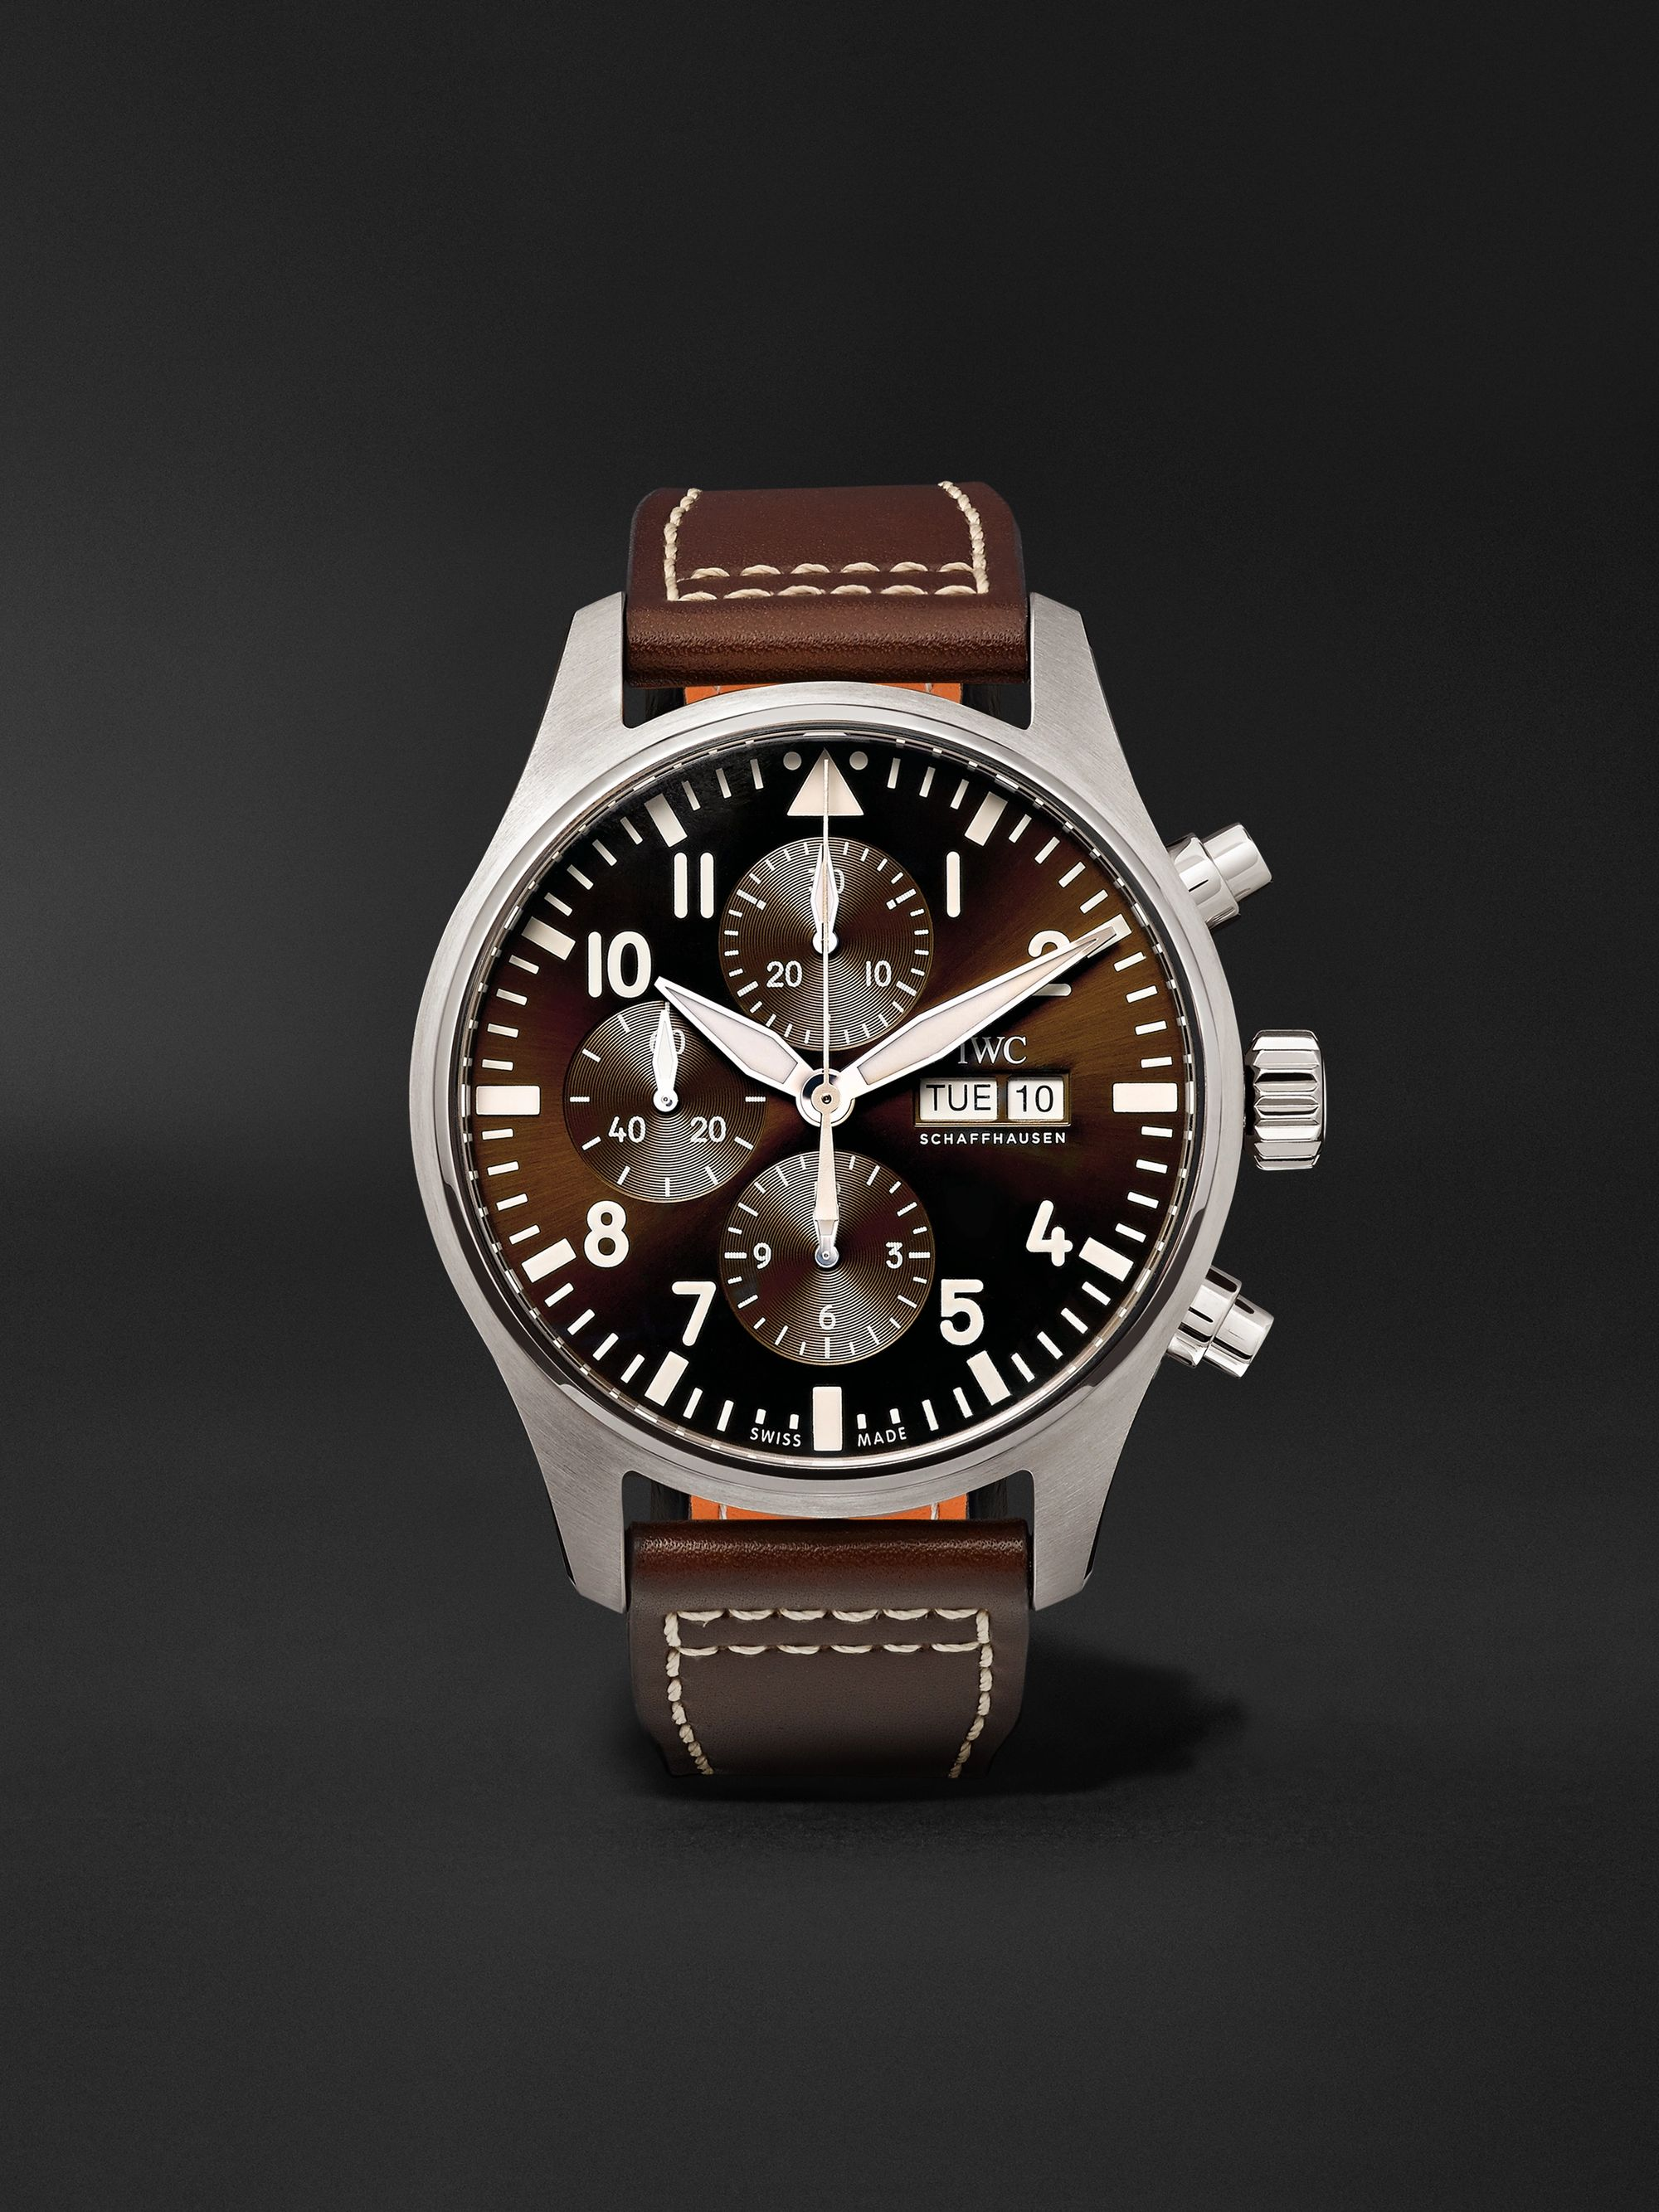 IWC SCHAFFHAUSEN Pilot's Antoine de Saint Exupéry Edition Automatic Chronograph 43mm Stainless Steel and Leather Watch